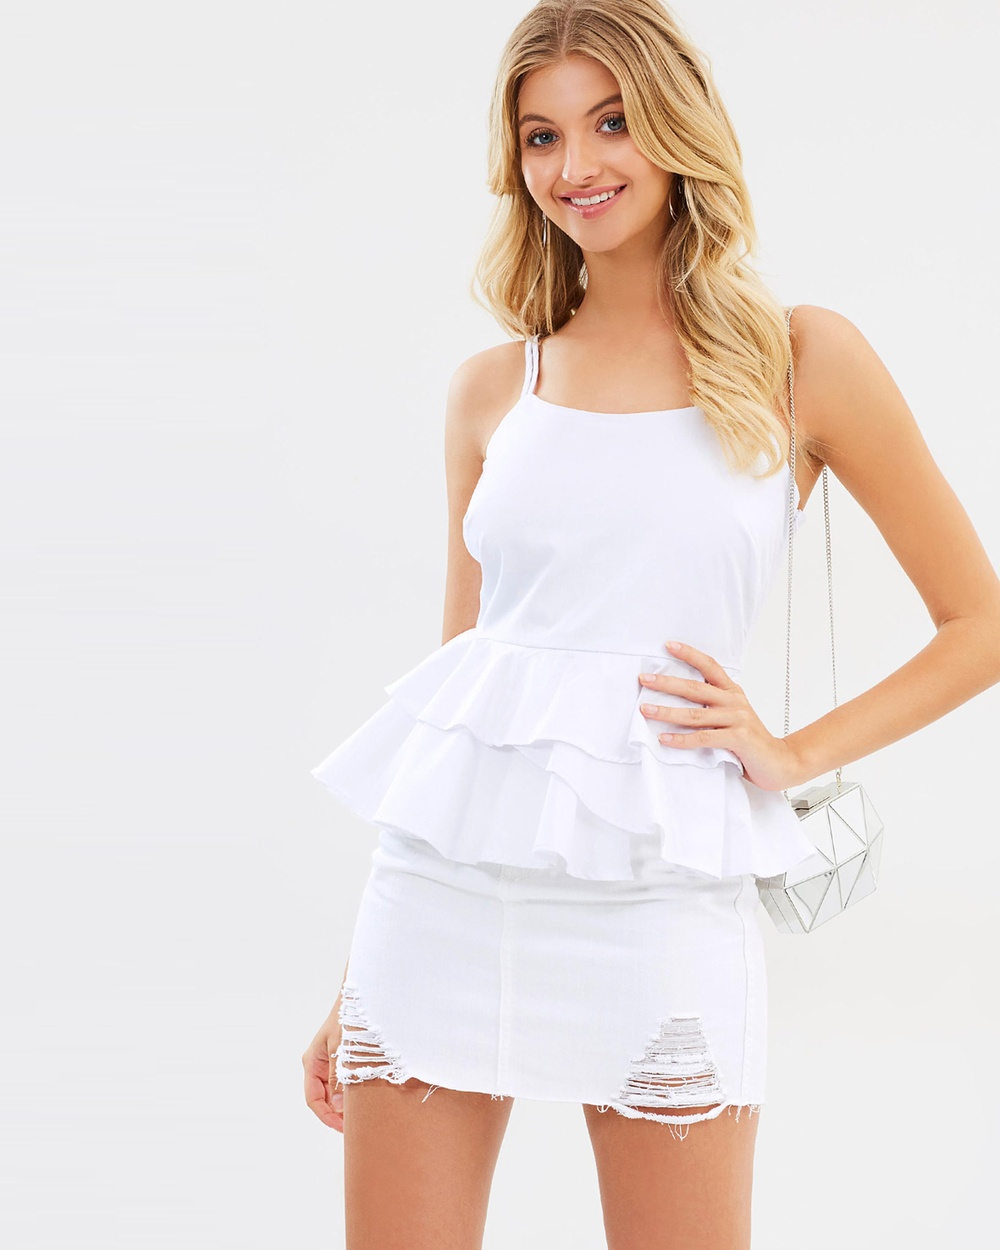 Atmos & Here ICONIC EXCLUSIVE Eden Frill Peplum Top Tops White ICONIC EXCLUSIVE Eden Frill Peplum Top